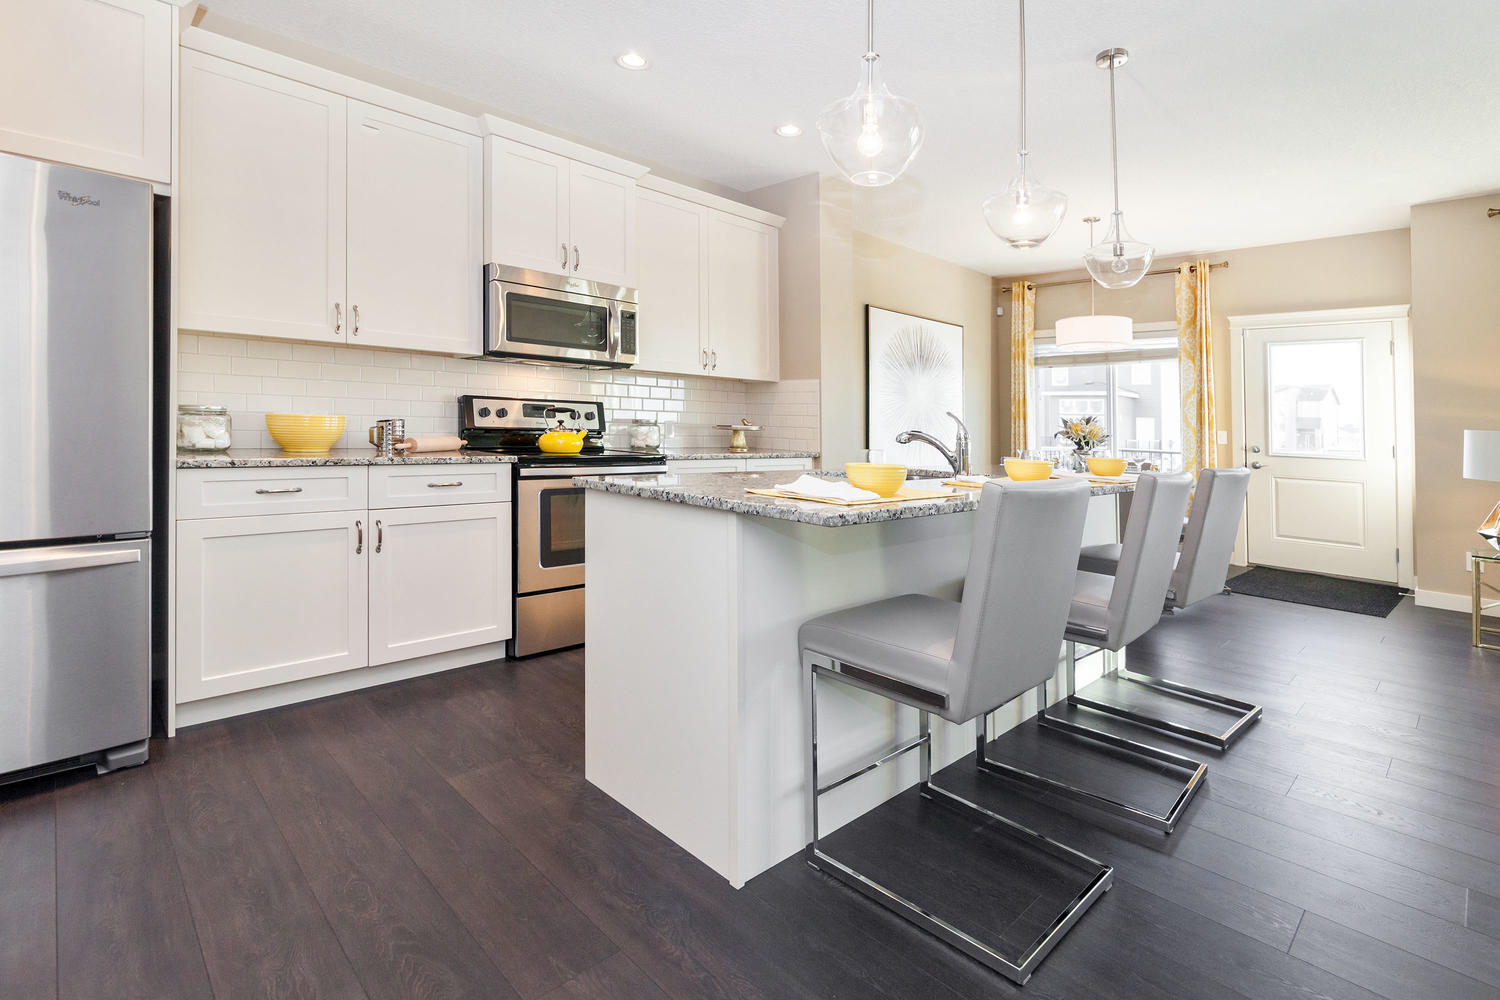 open concept kitchen with side entrance in a pacesetter front drive show home.